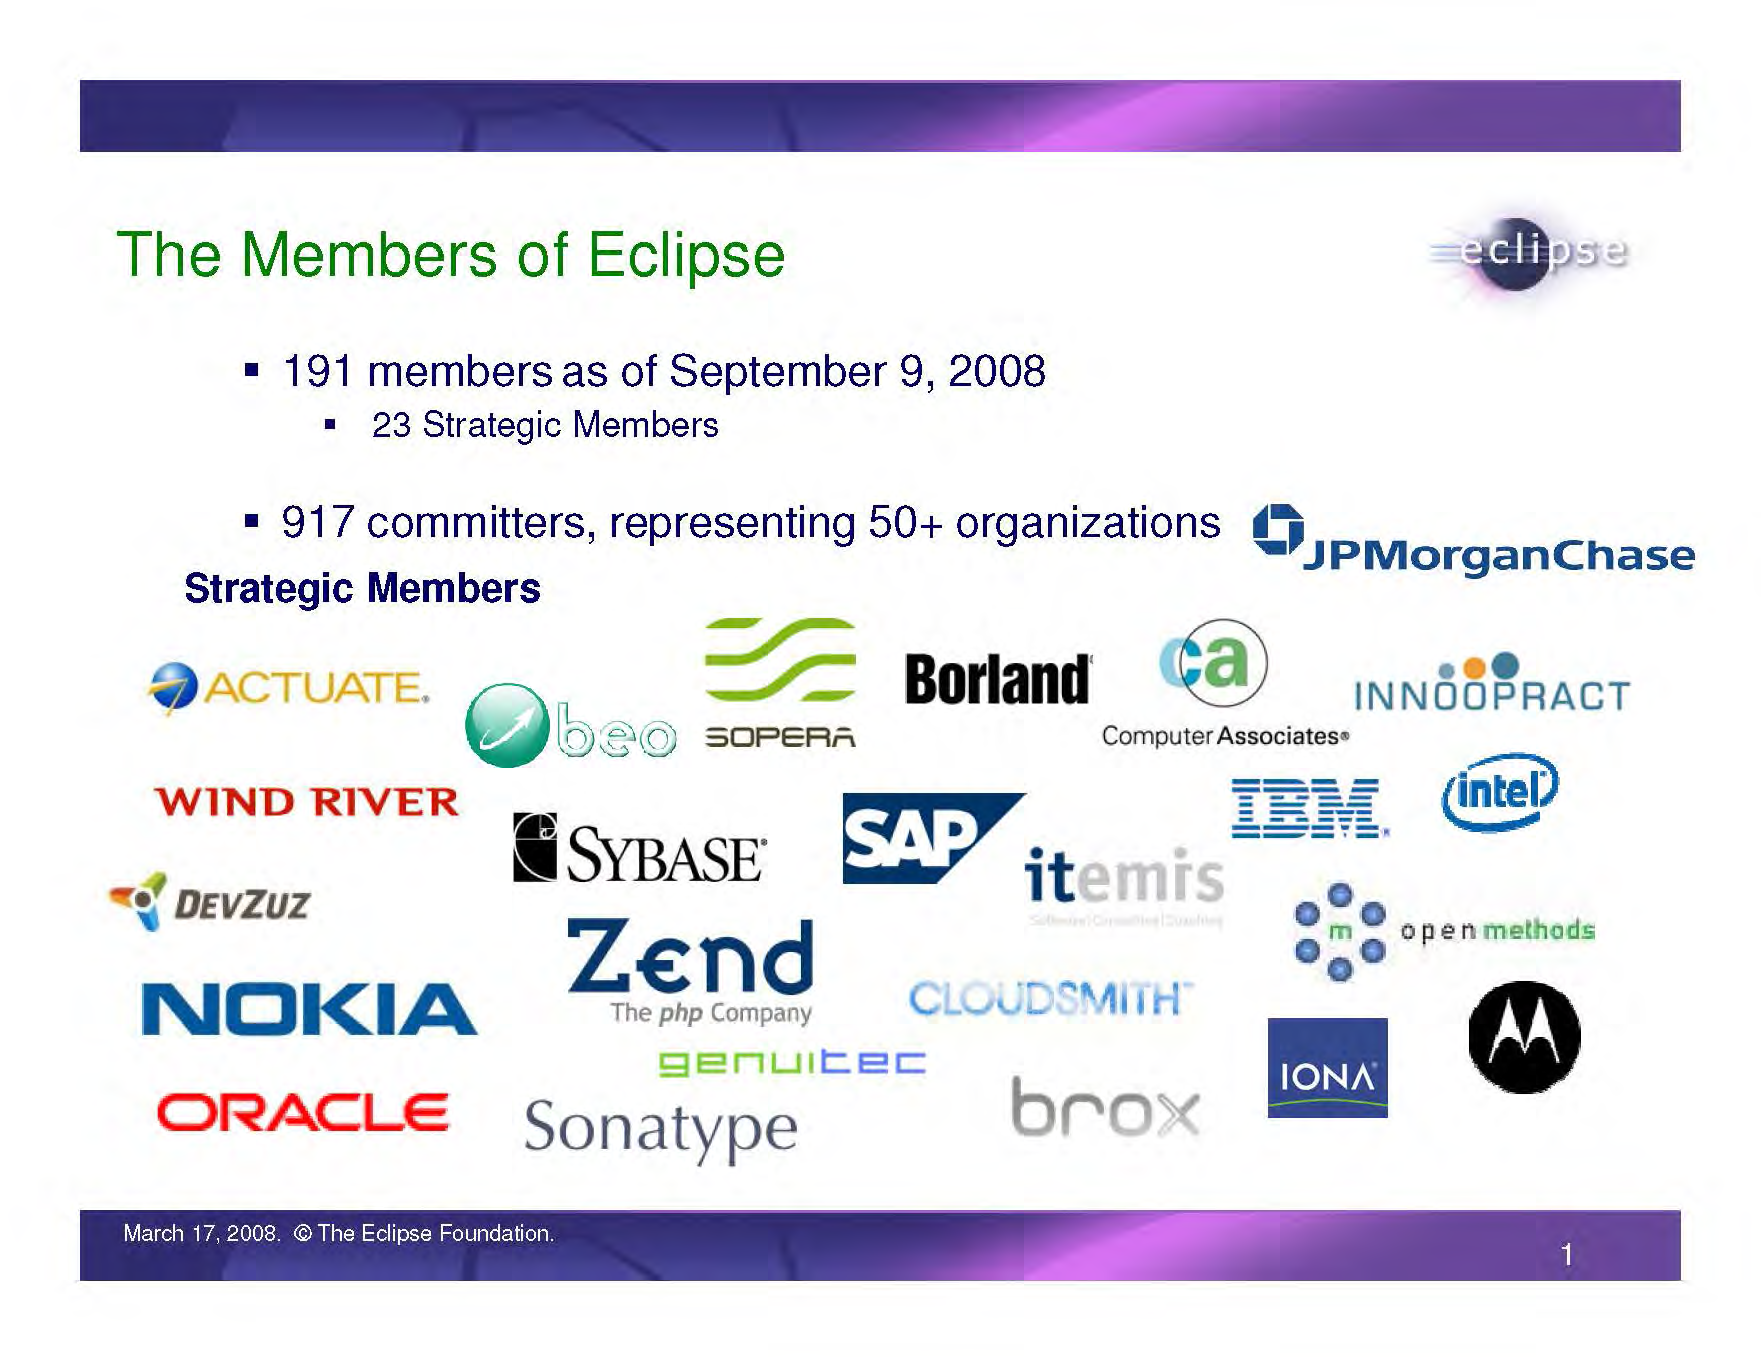 2008-09-17-Eclipse-Foundation-Meeting-Minutes-MEMBERSHIP-LOGOS-Sep-17-2008_Page_1.png?width=650